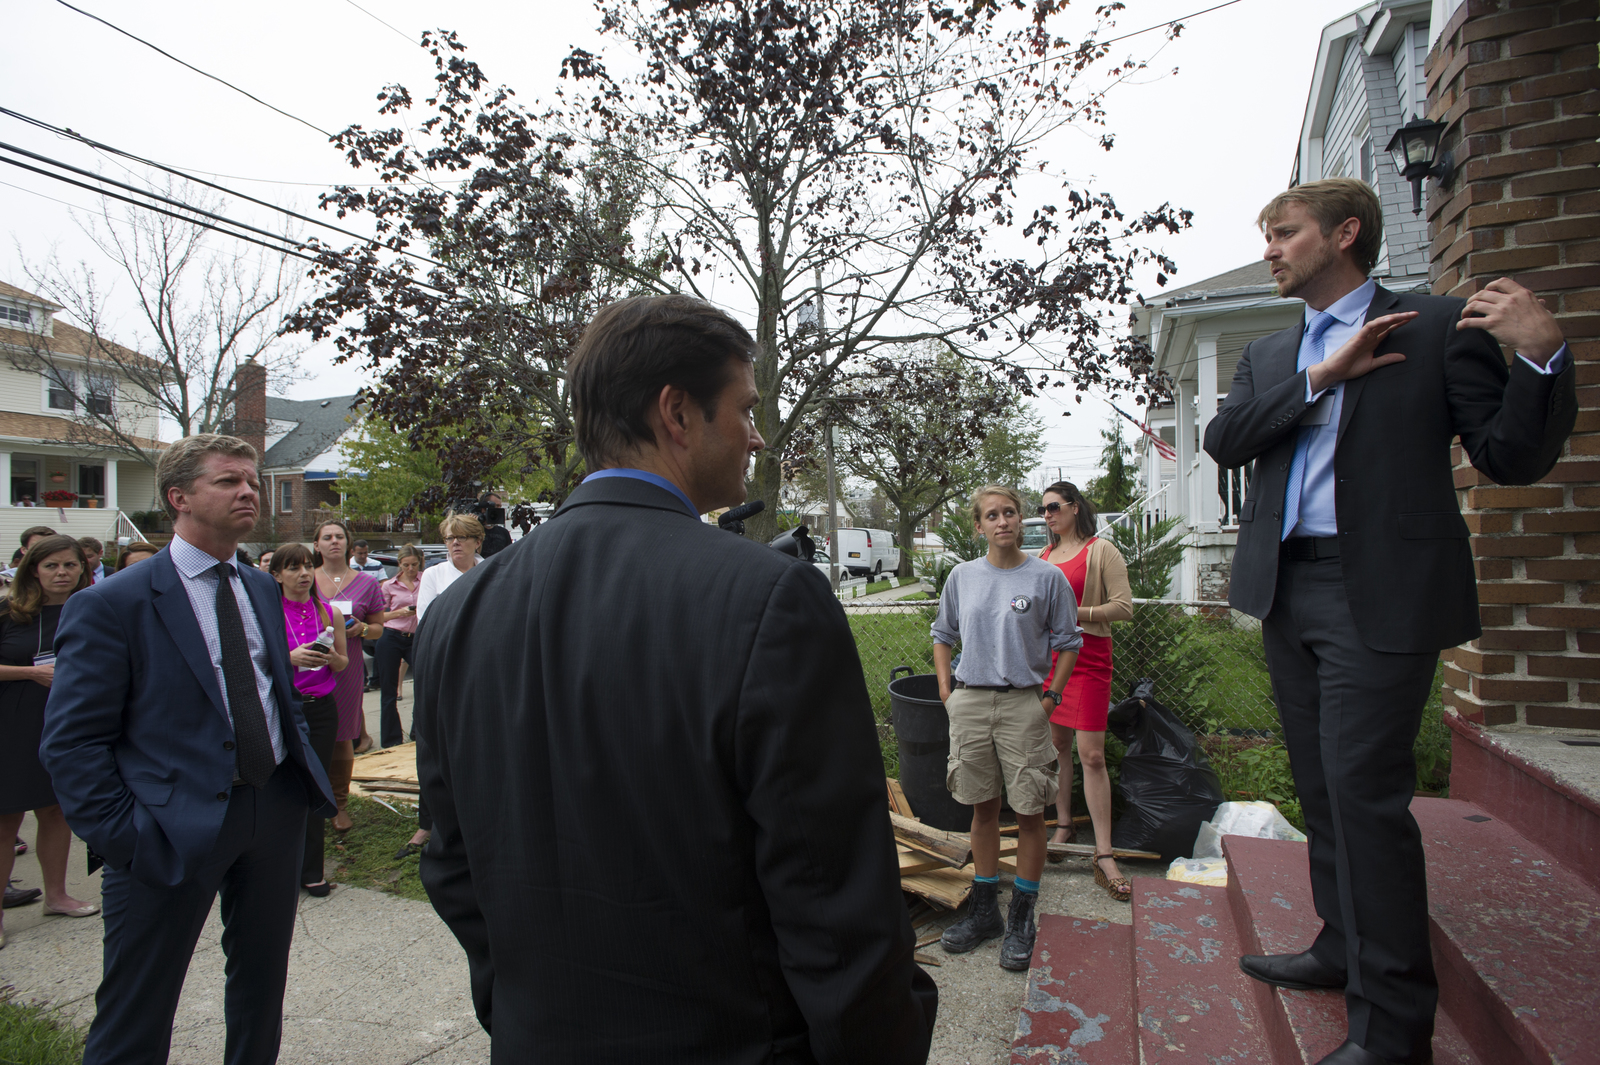 Secretary Shaun Donovan [and aides touring New York] homes damaged by Hurricane Sandy